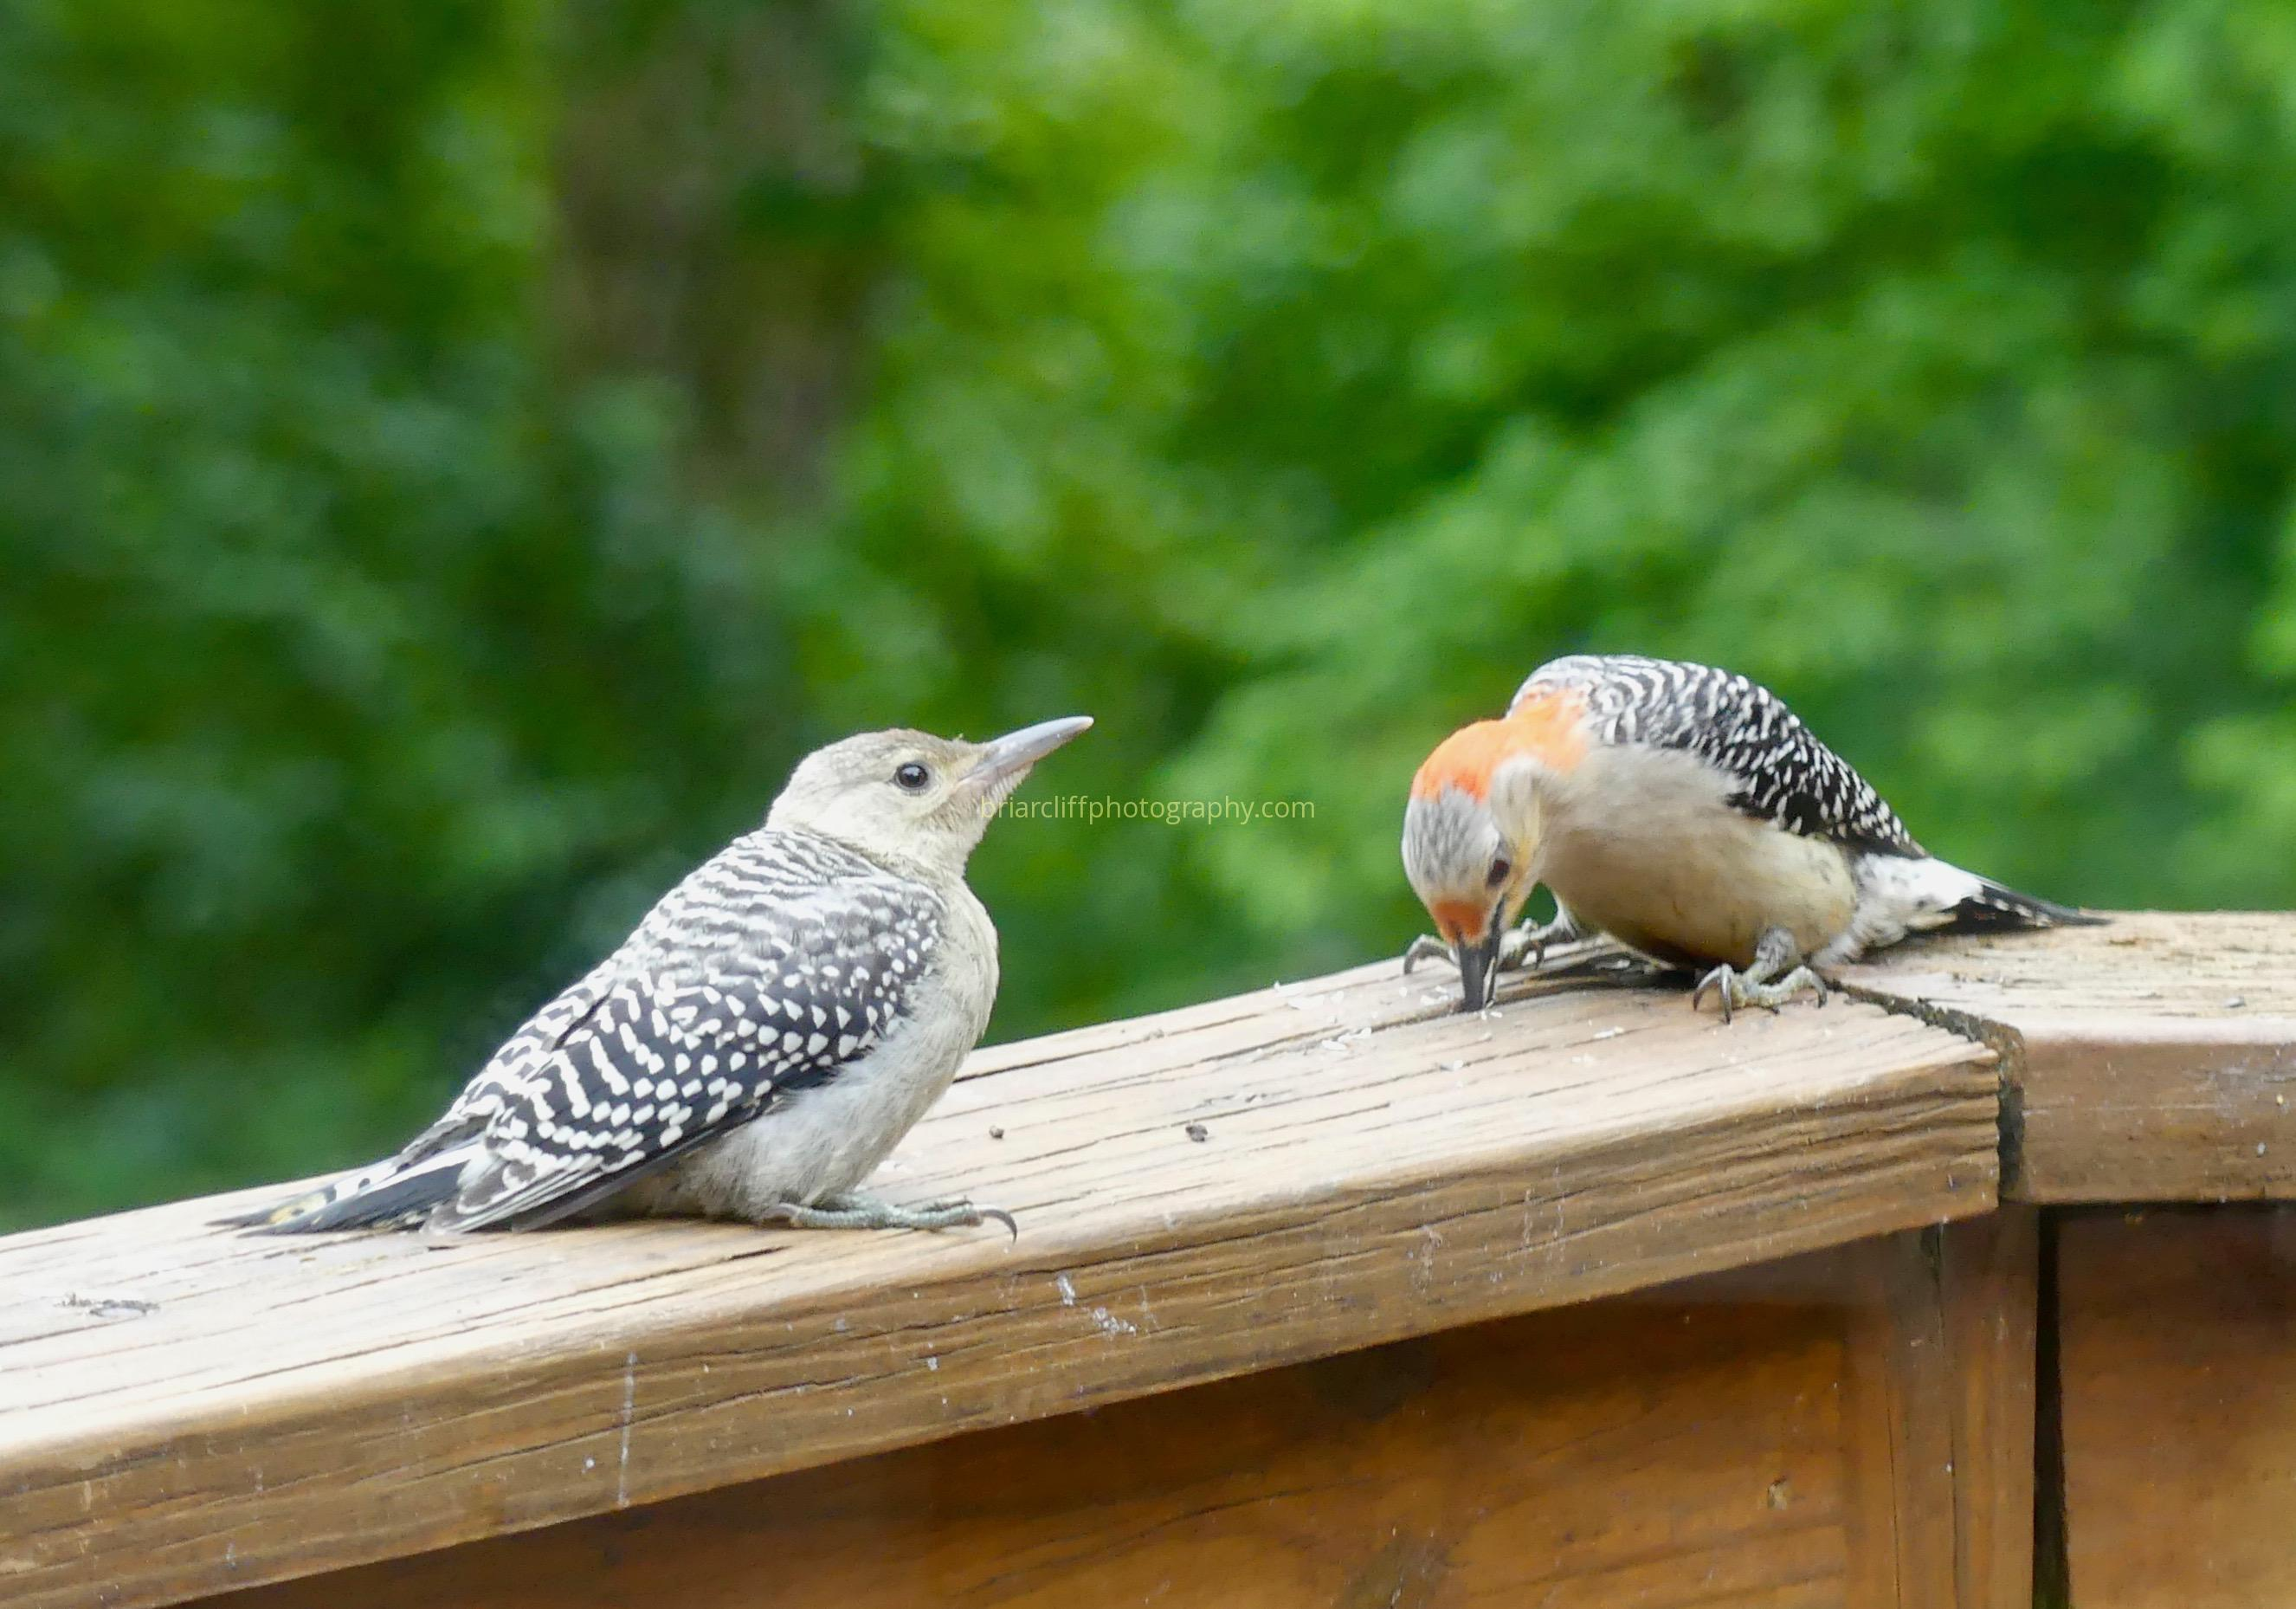 Parent and juvenile red-bellied woodpecker